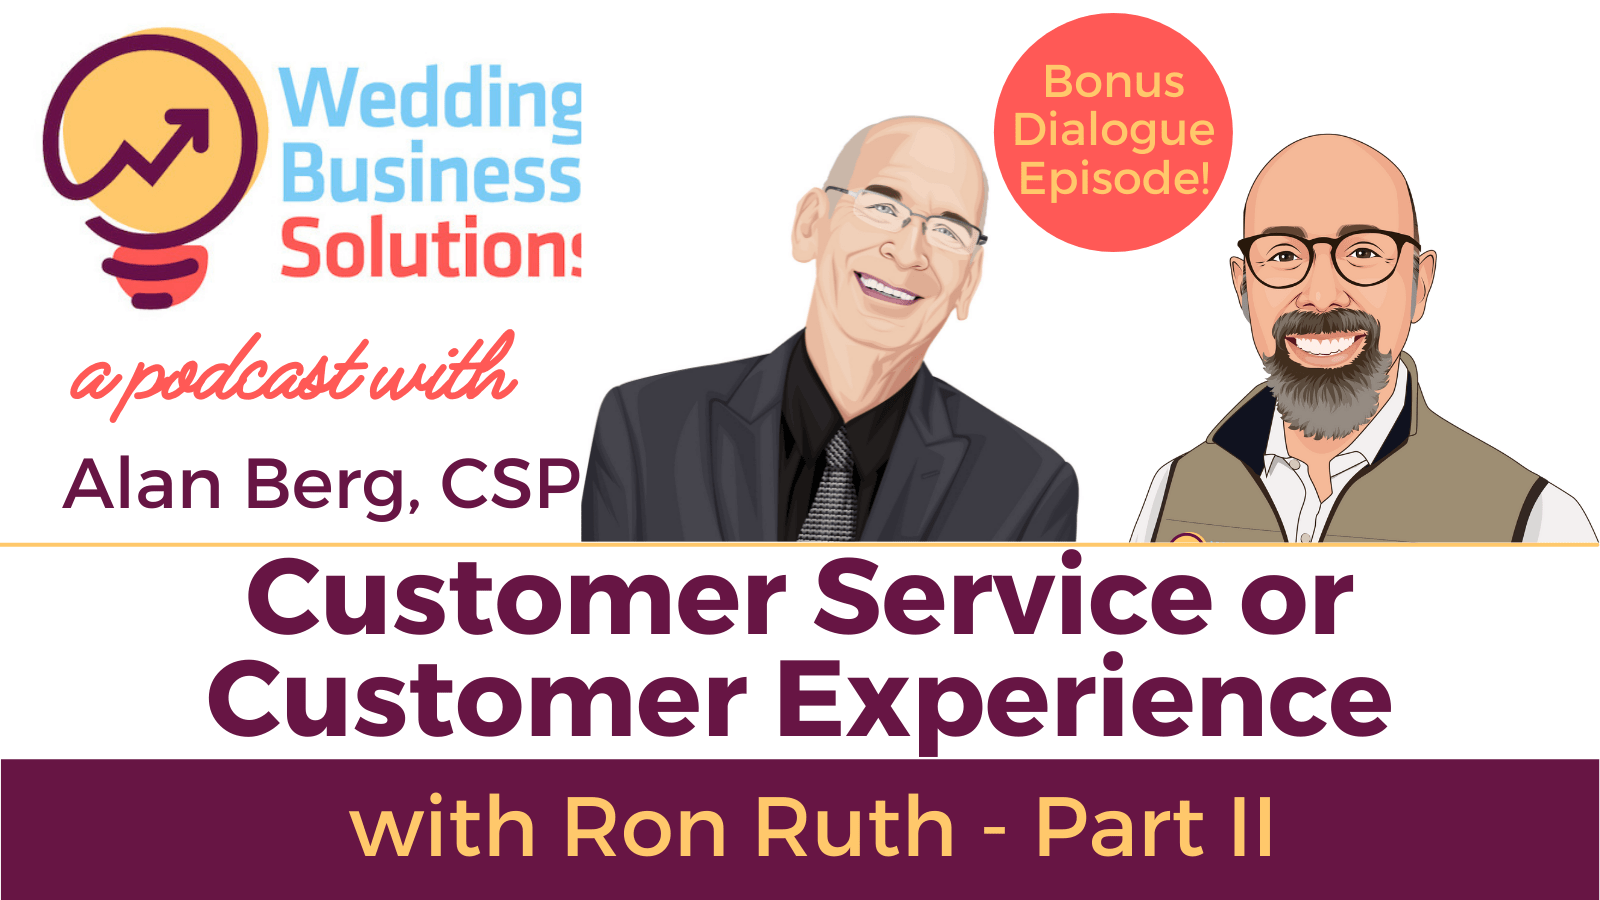 Wedding Business Solutions Podcast with Alan Berg CSP - Bonus Episode with Ron Ruth Part II